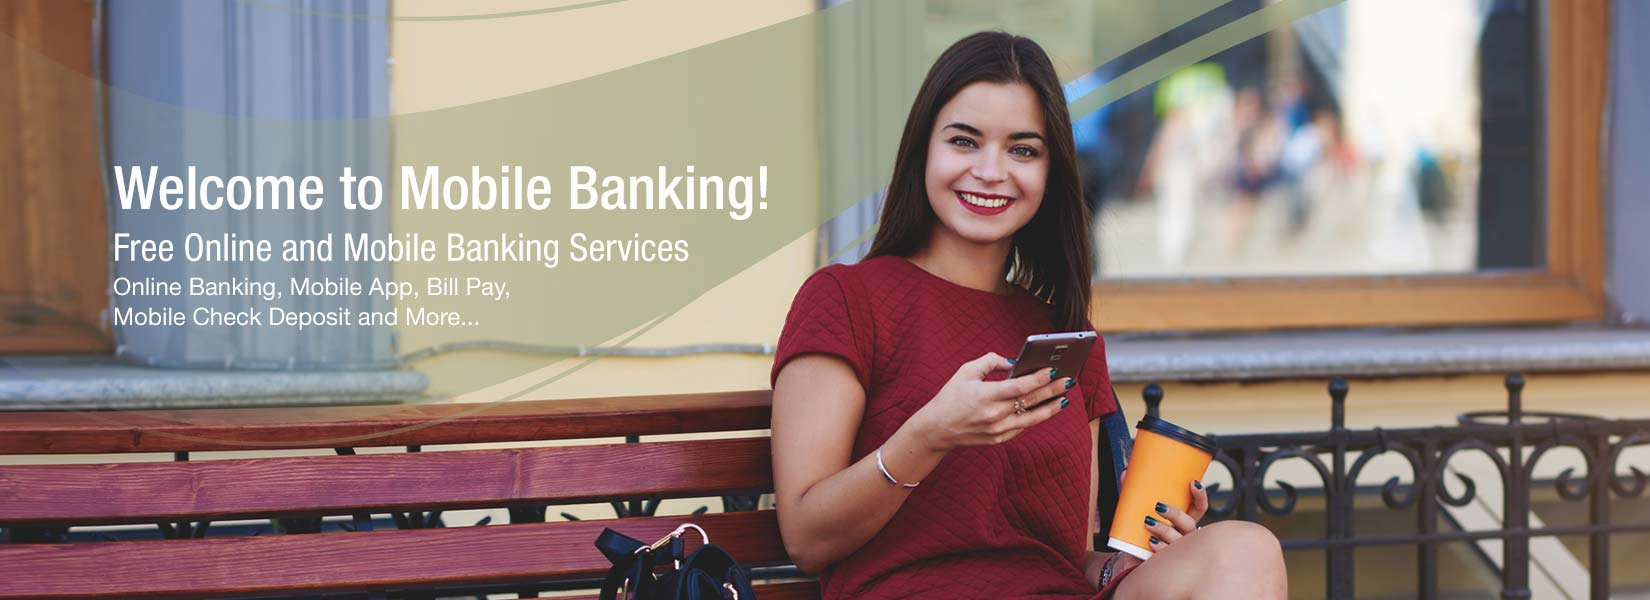 Mobile Banking at your finger tips!